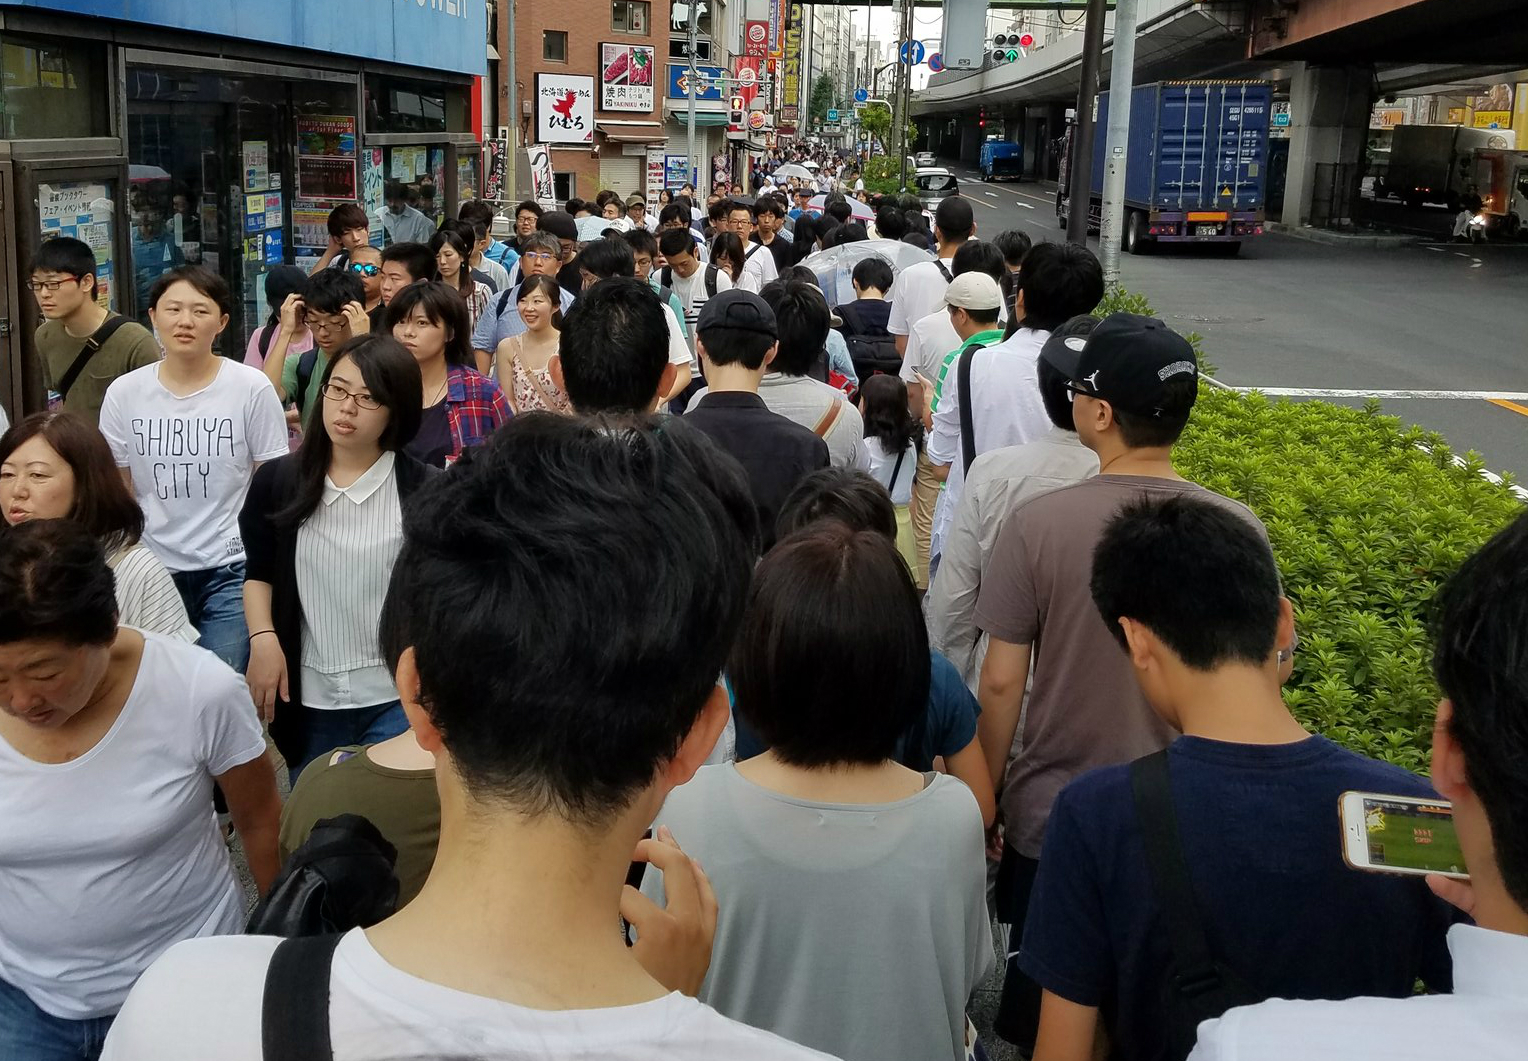 Massive lines and raffles continue in Japan for the Nintendo Switch screenshot